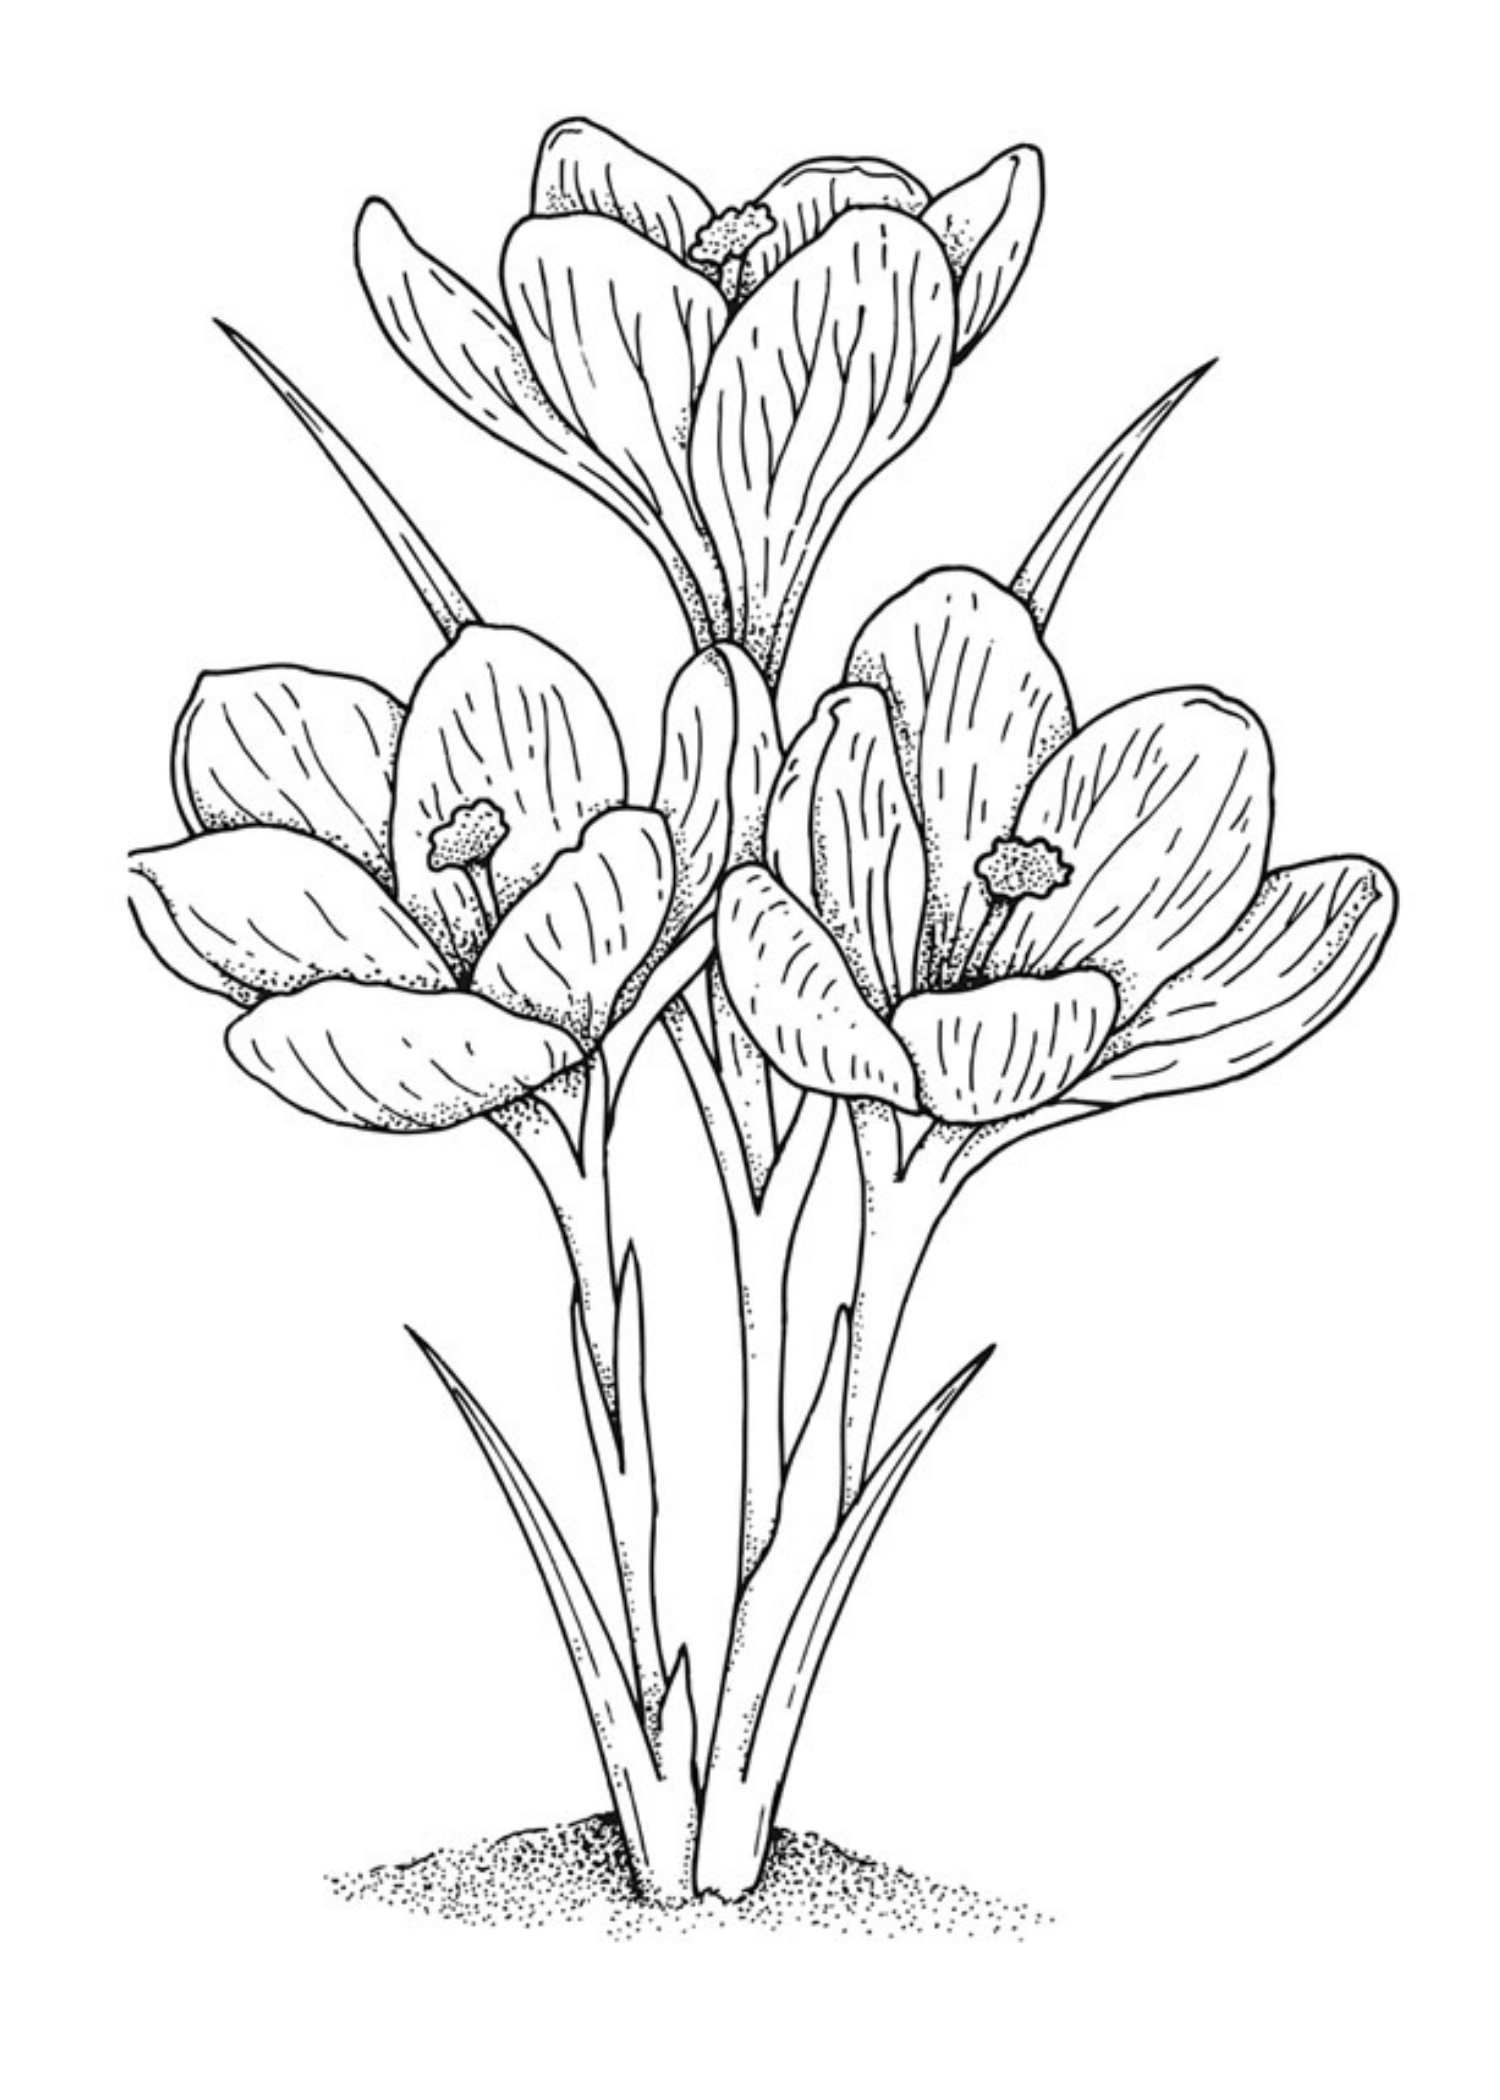 vintage flower coloring pages coloring book for adult and older children coloring page flower coloring vintage pages